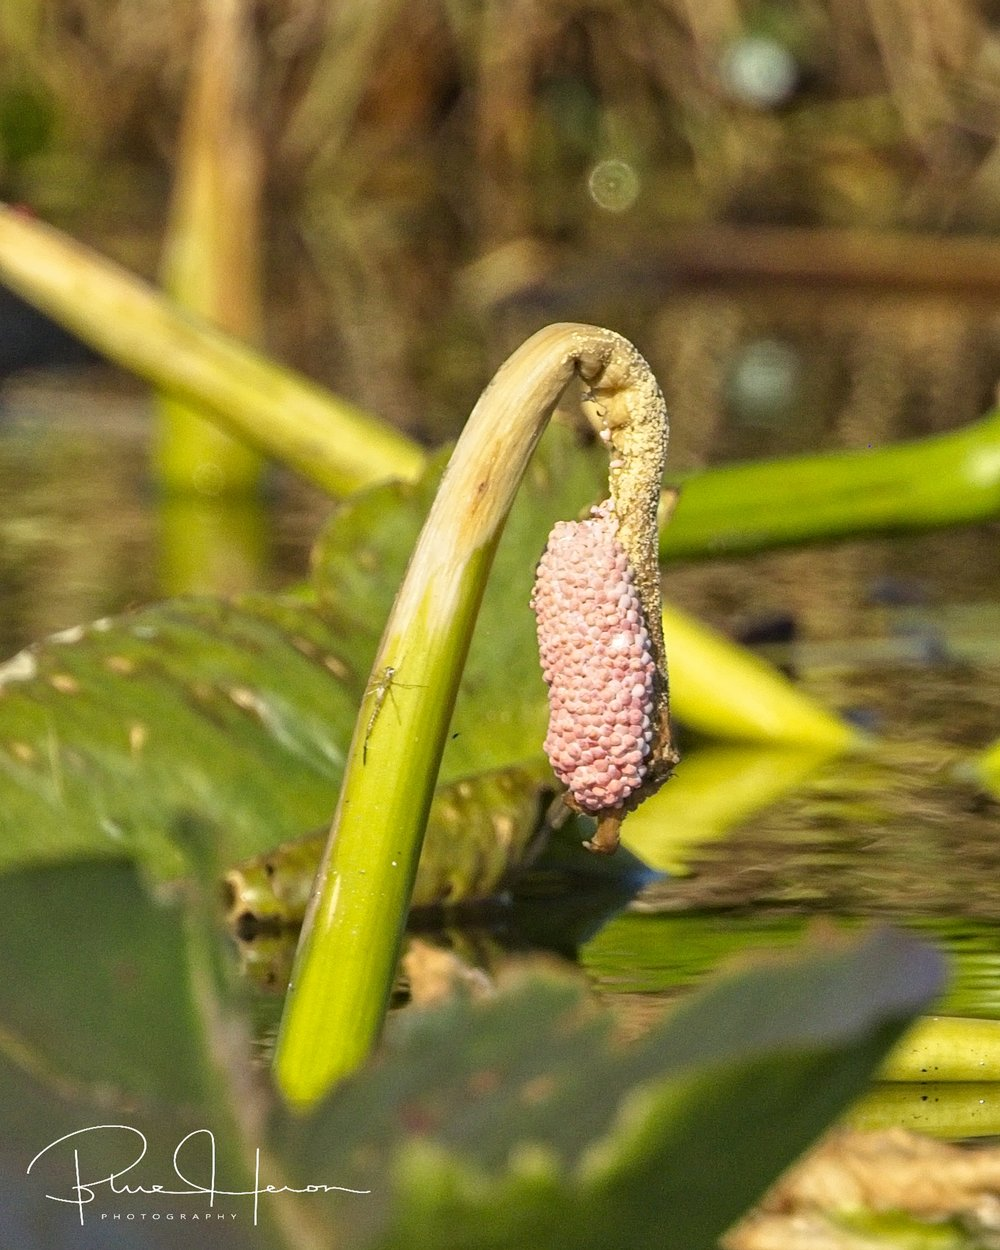 This species of apple snail eggs with its pink hue is the Island Apple Snail.  It is replacing the diminishing American Apple Snail whose eggs are more grayish in color.